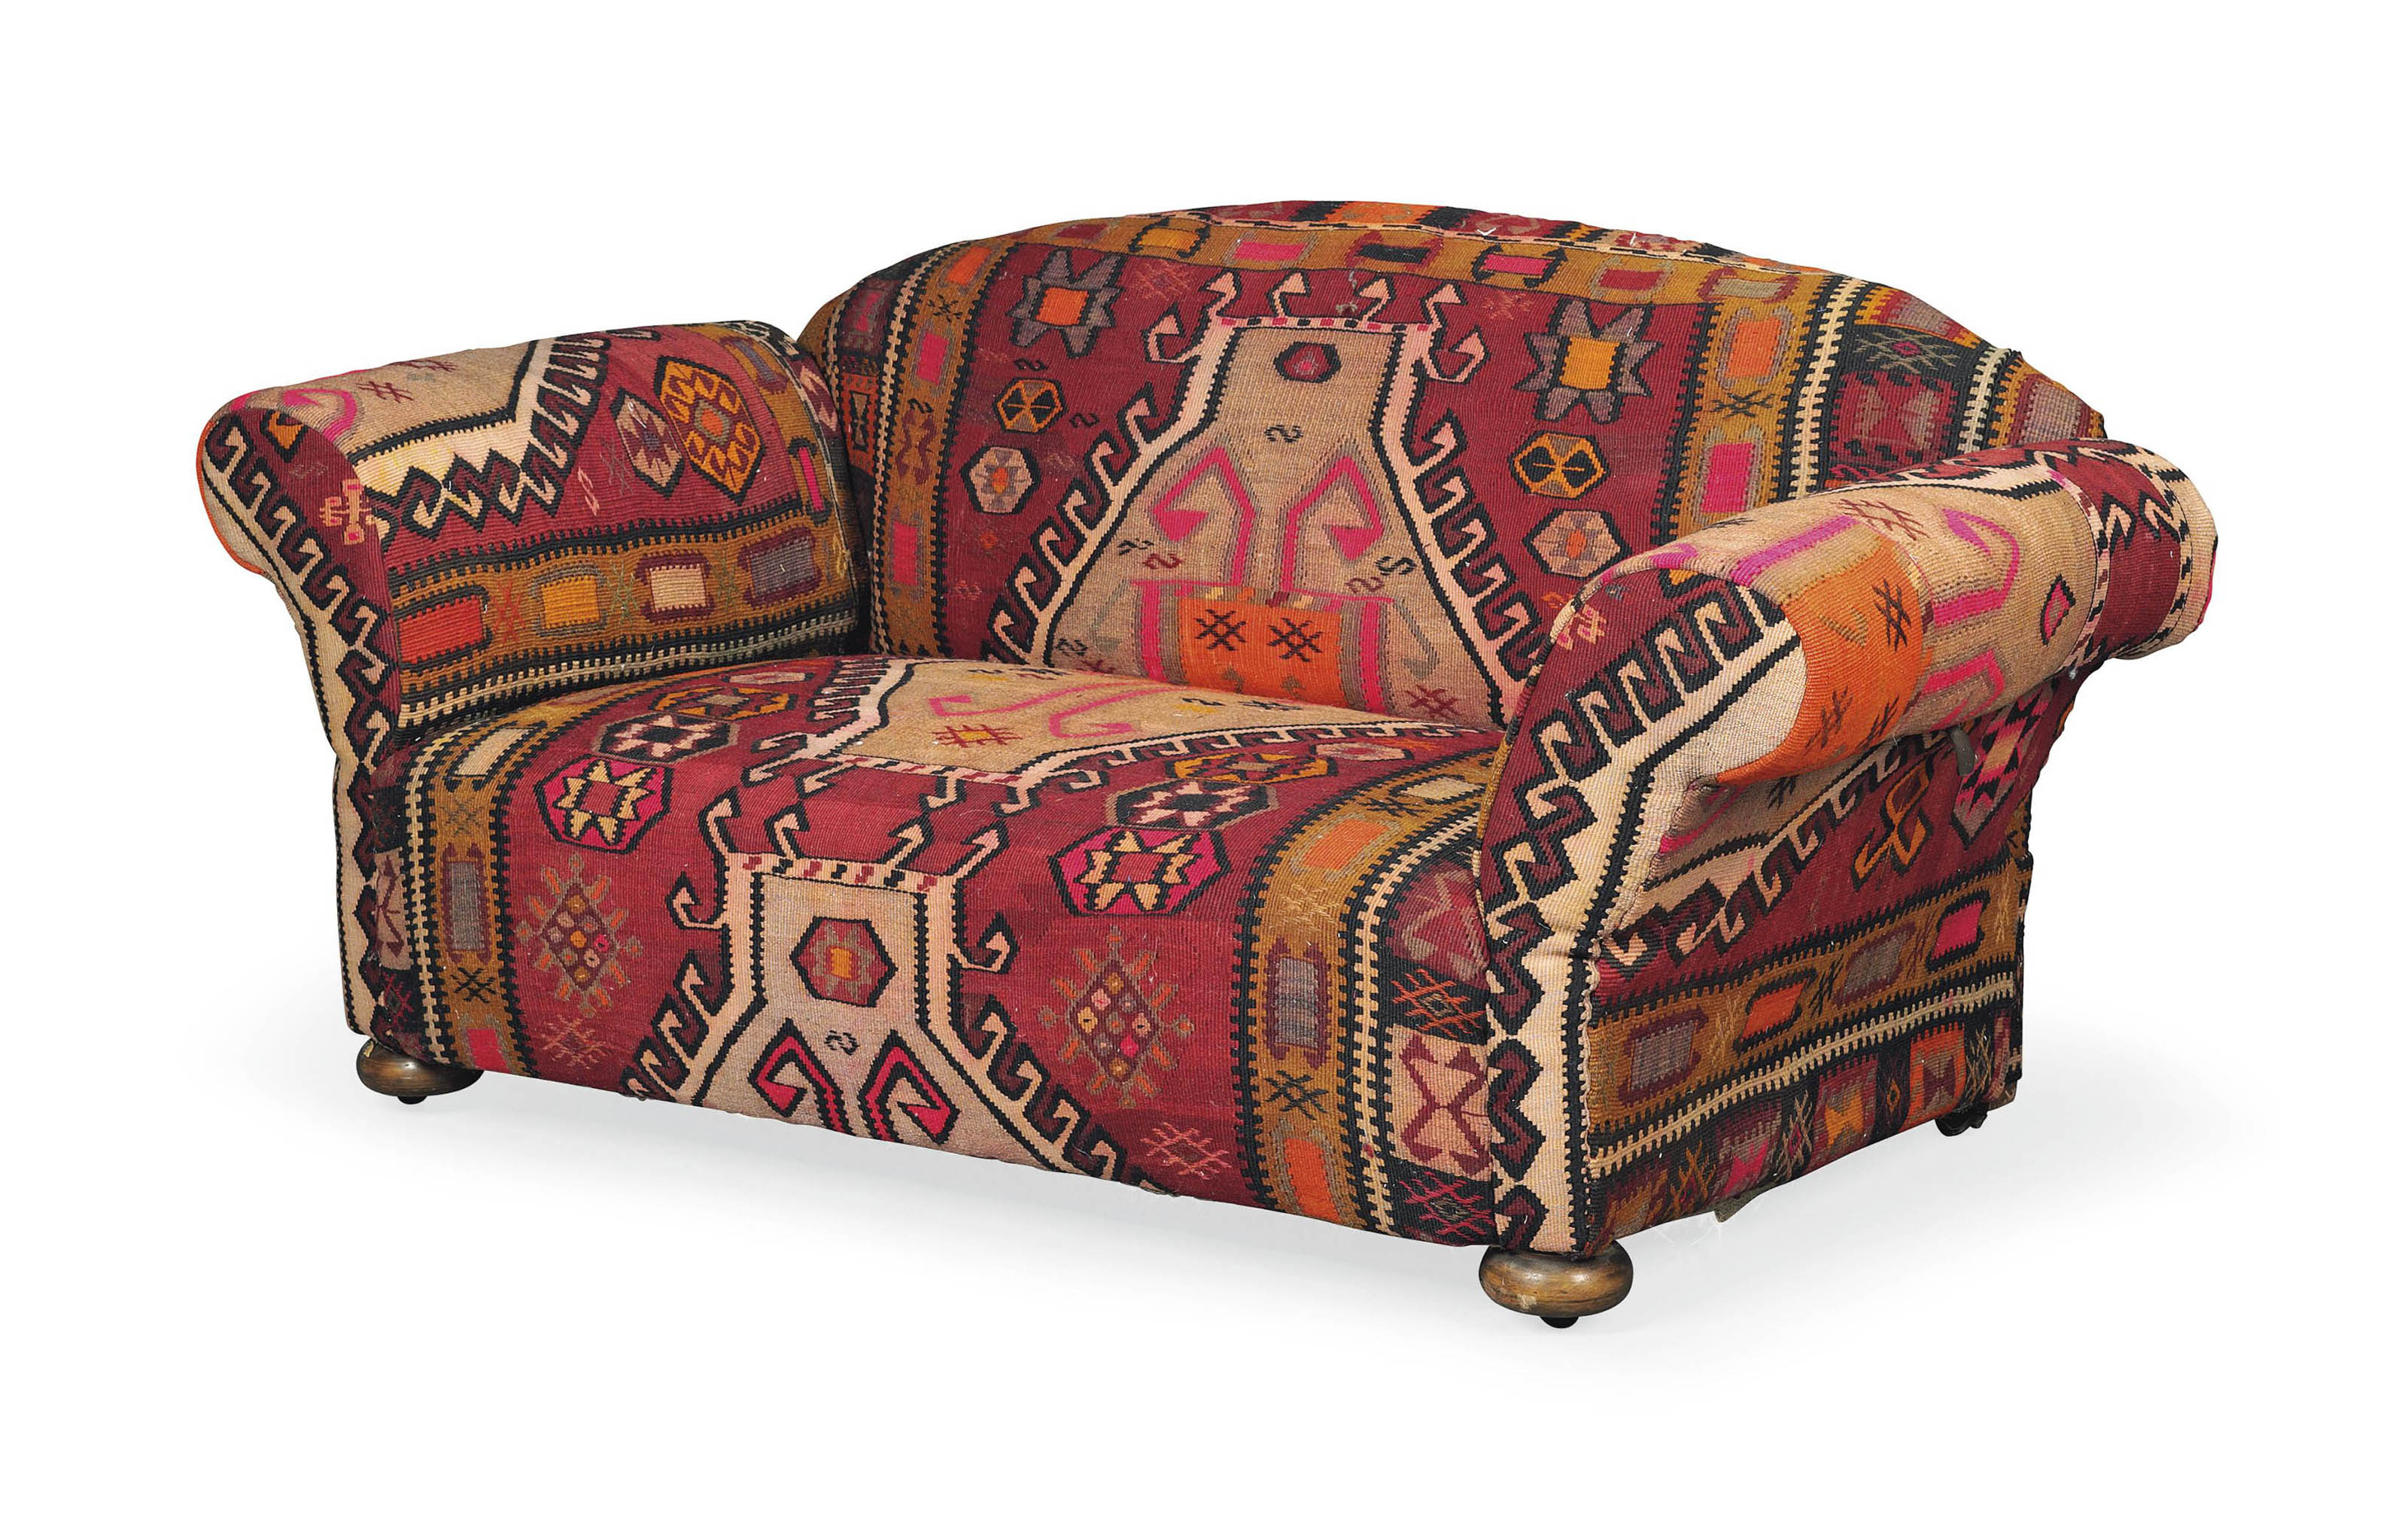 Incredible A Small Kilim Upholstered Sofa Circa 1900 Late 19Th Ibusinesslaw Wood Chair Design Ideas Ibusinesslaworg